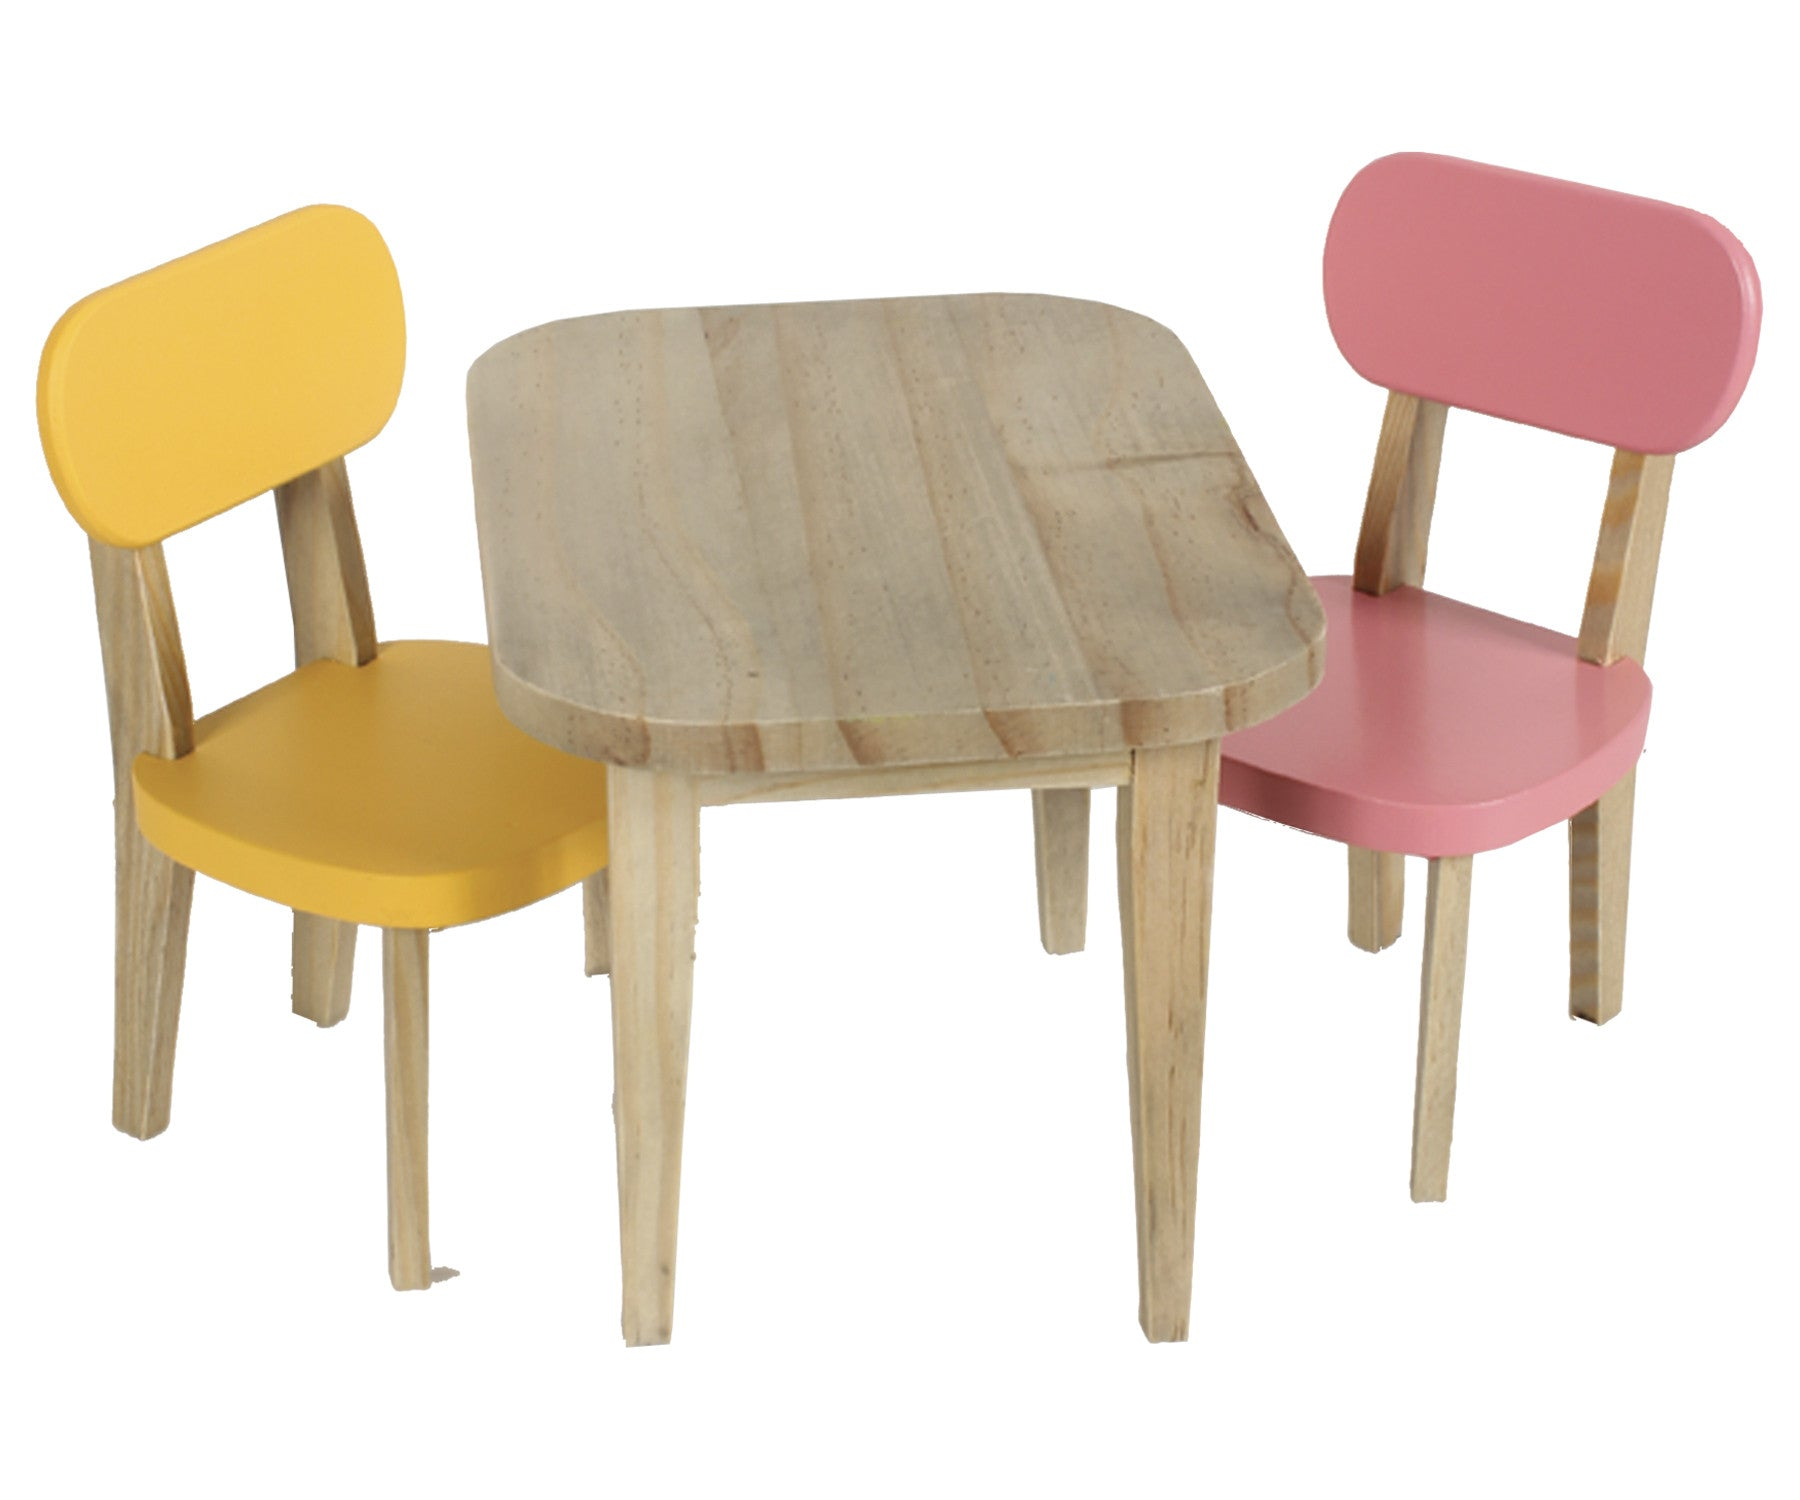 Wooden table and 2 chairs, yellow and pink